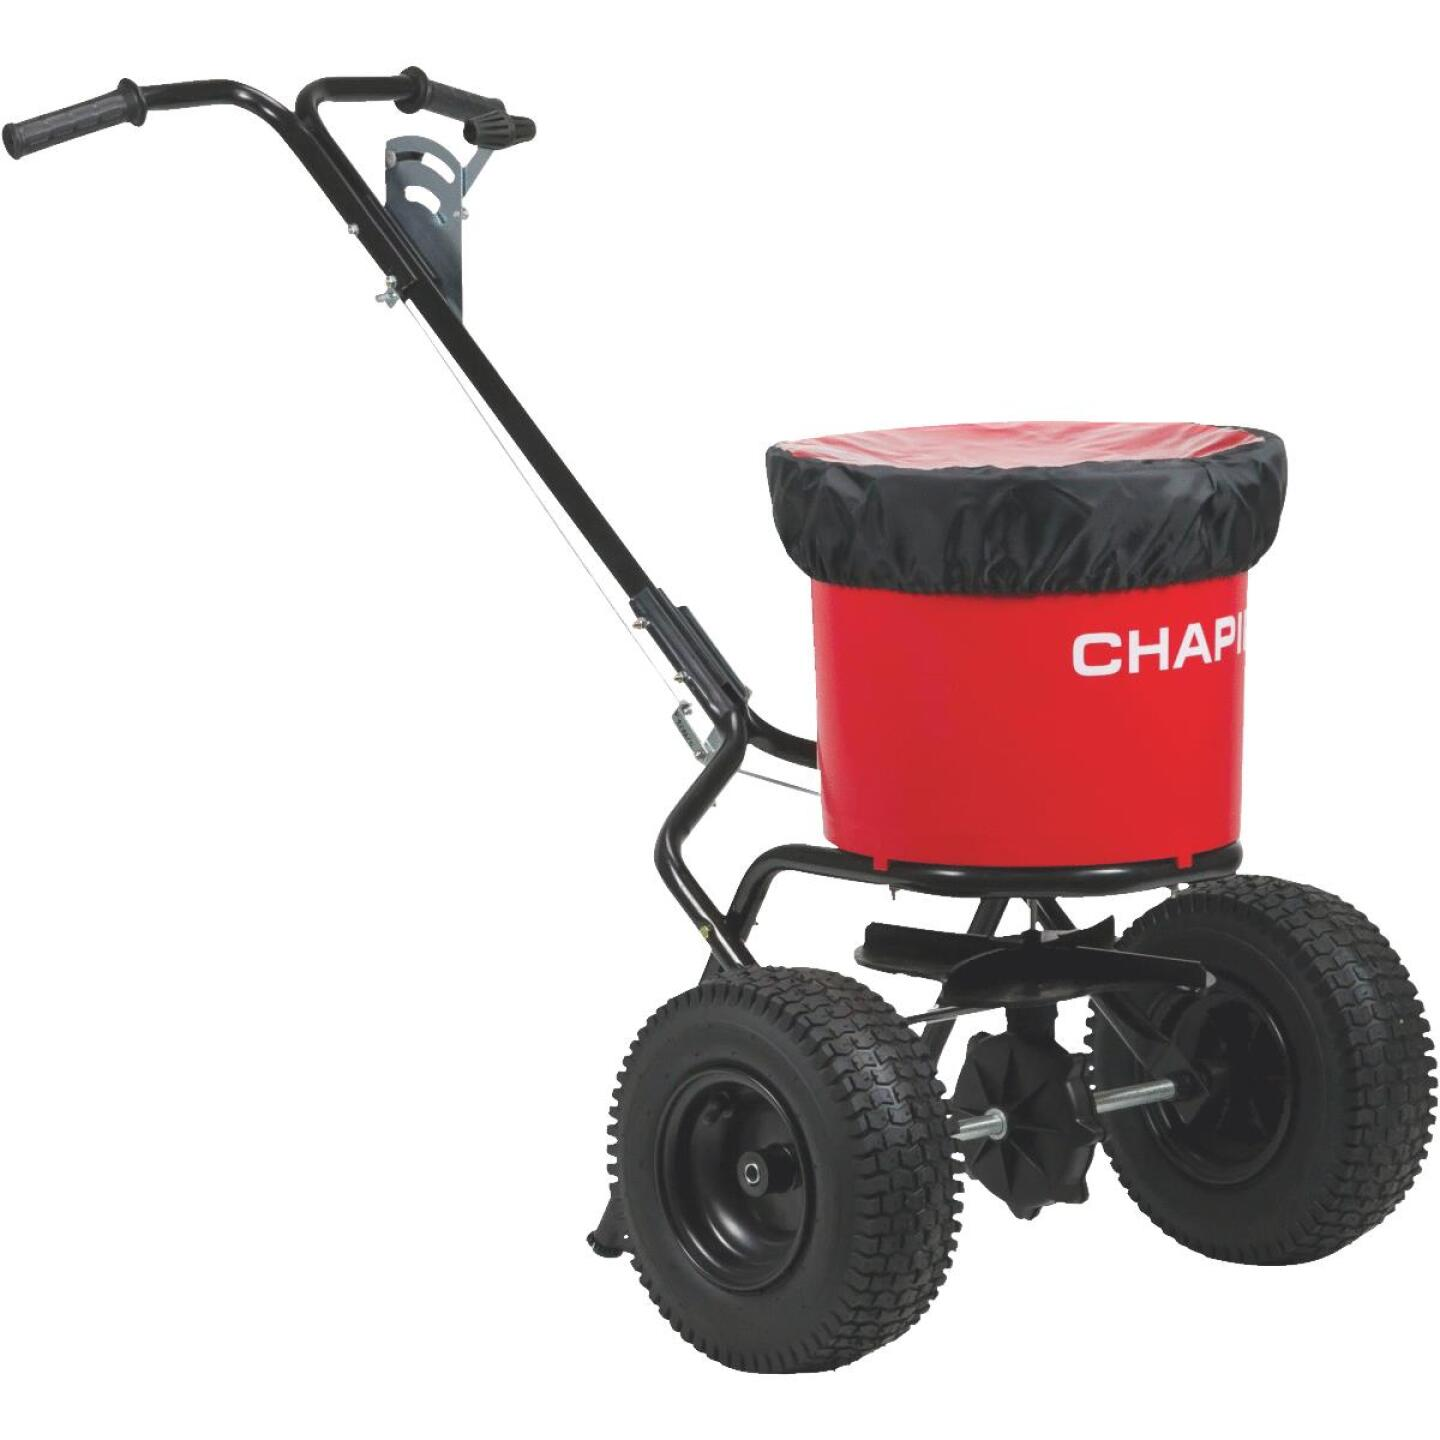 Chapin 70 Lb. Contractor Broadcast Spreader Image 2